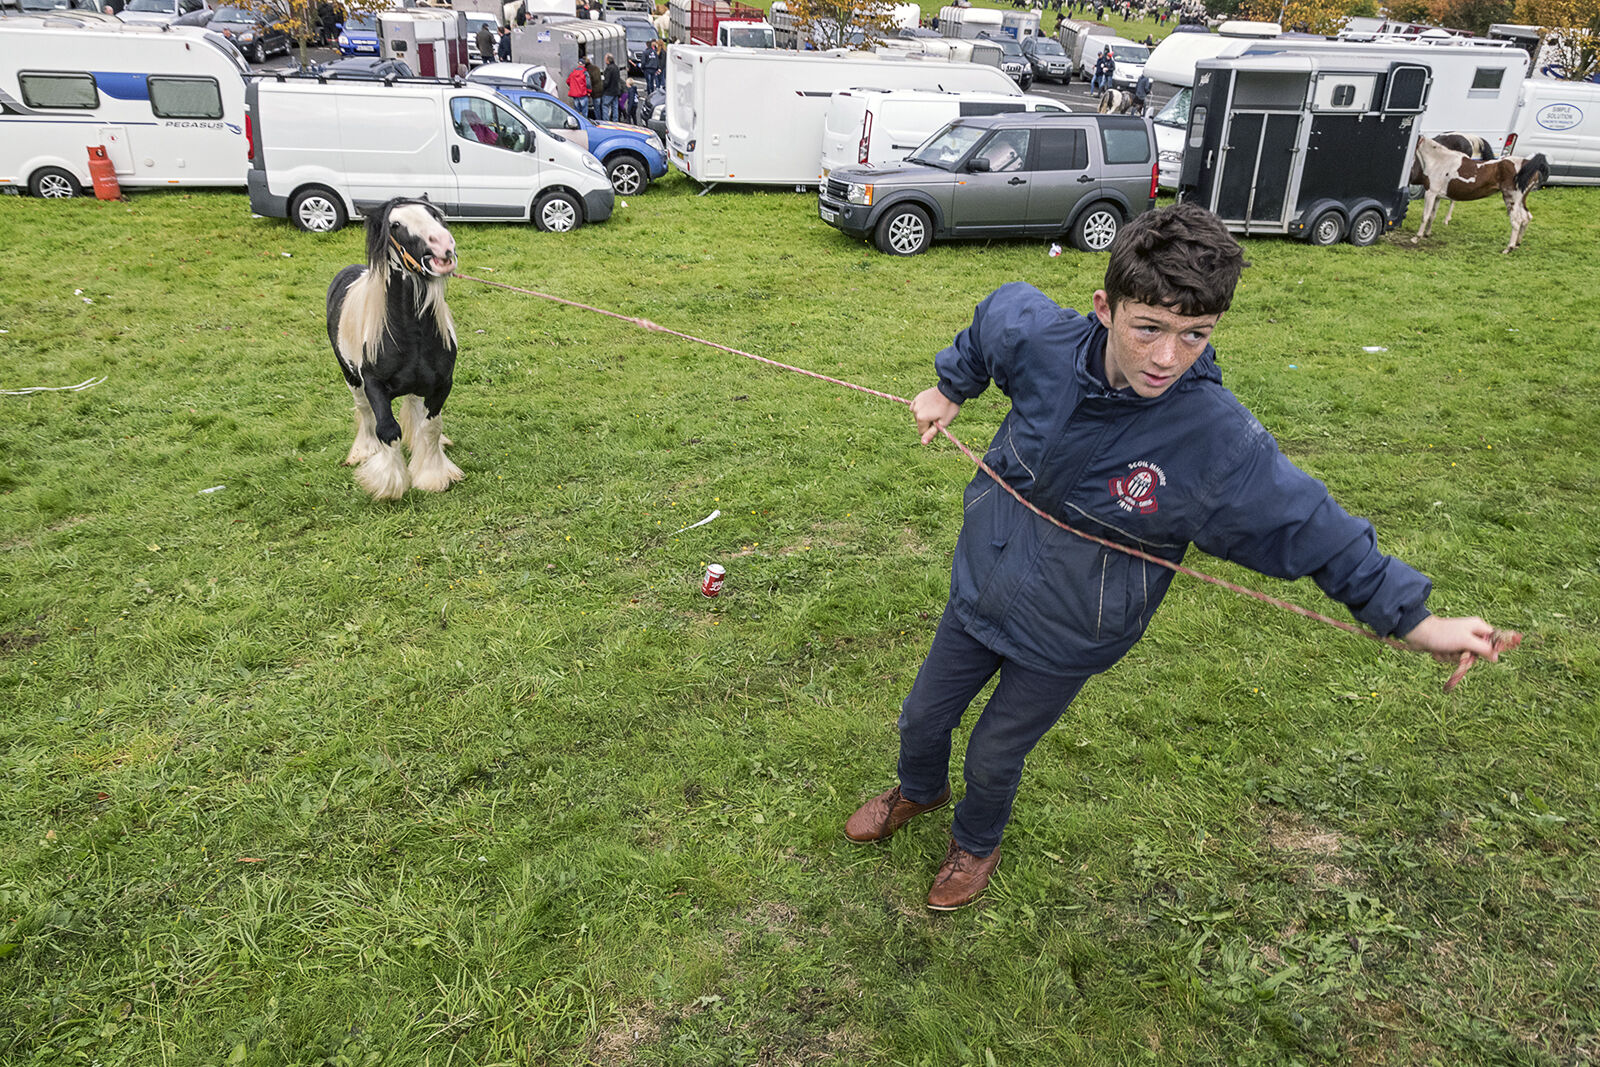 Larry Connors pulling his pony at Ballinasloe Horse fair, Galway, Ireland 2018